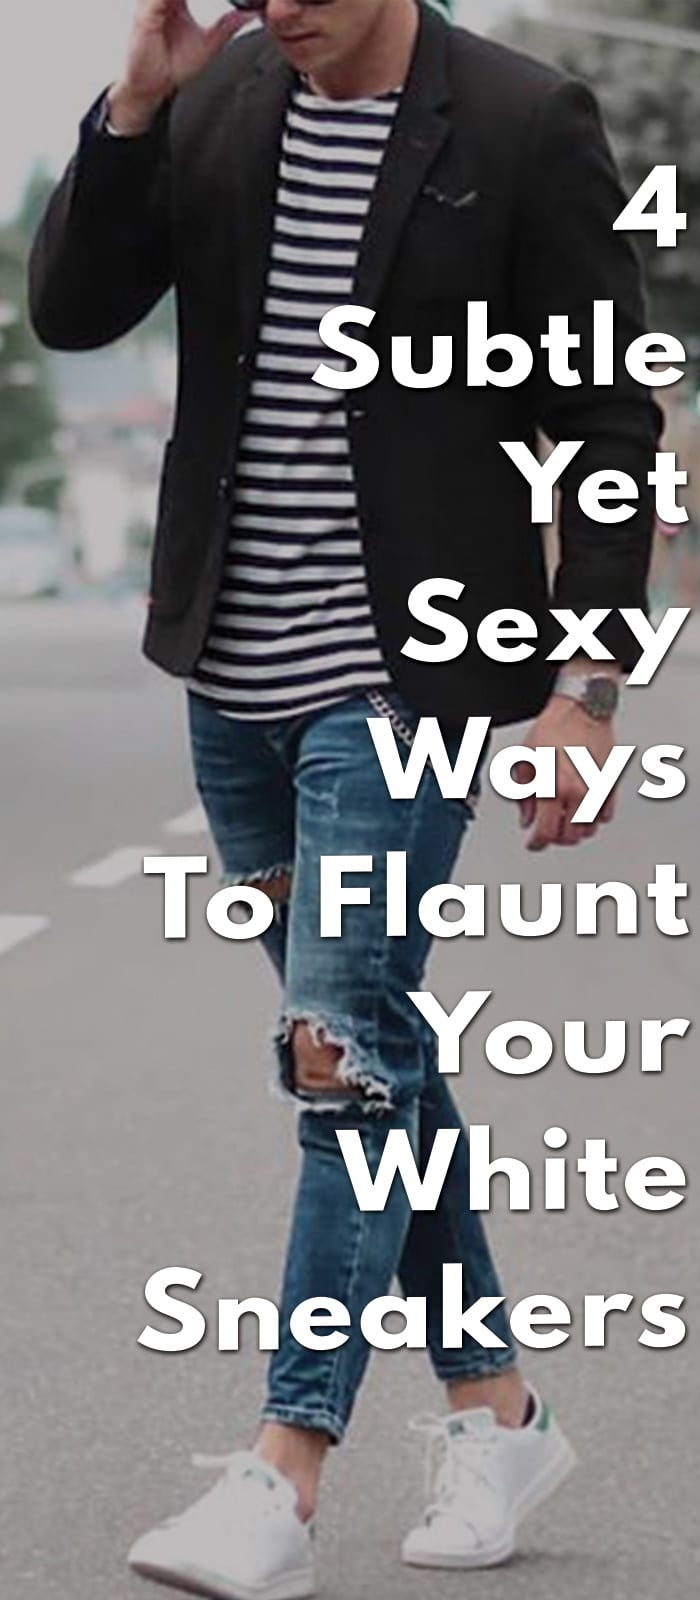 4-Subtle-Yet-Sexy-Ways-To-Flaunt-Your-White-Sneakers